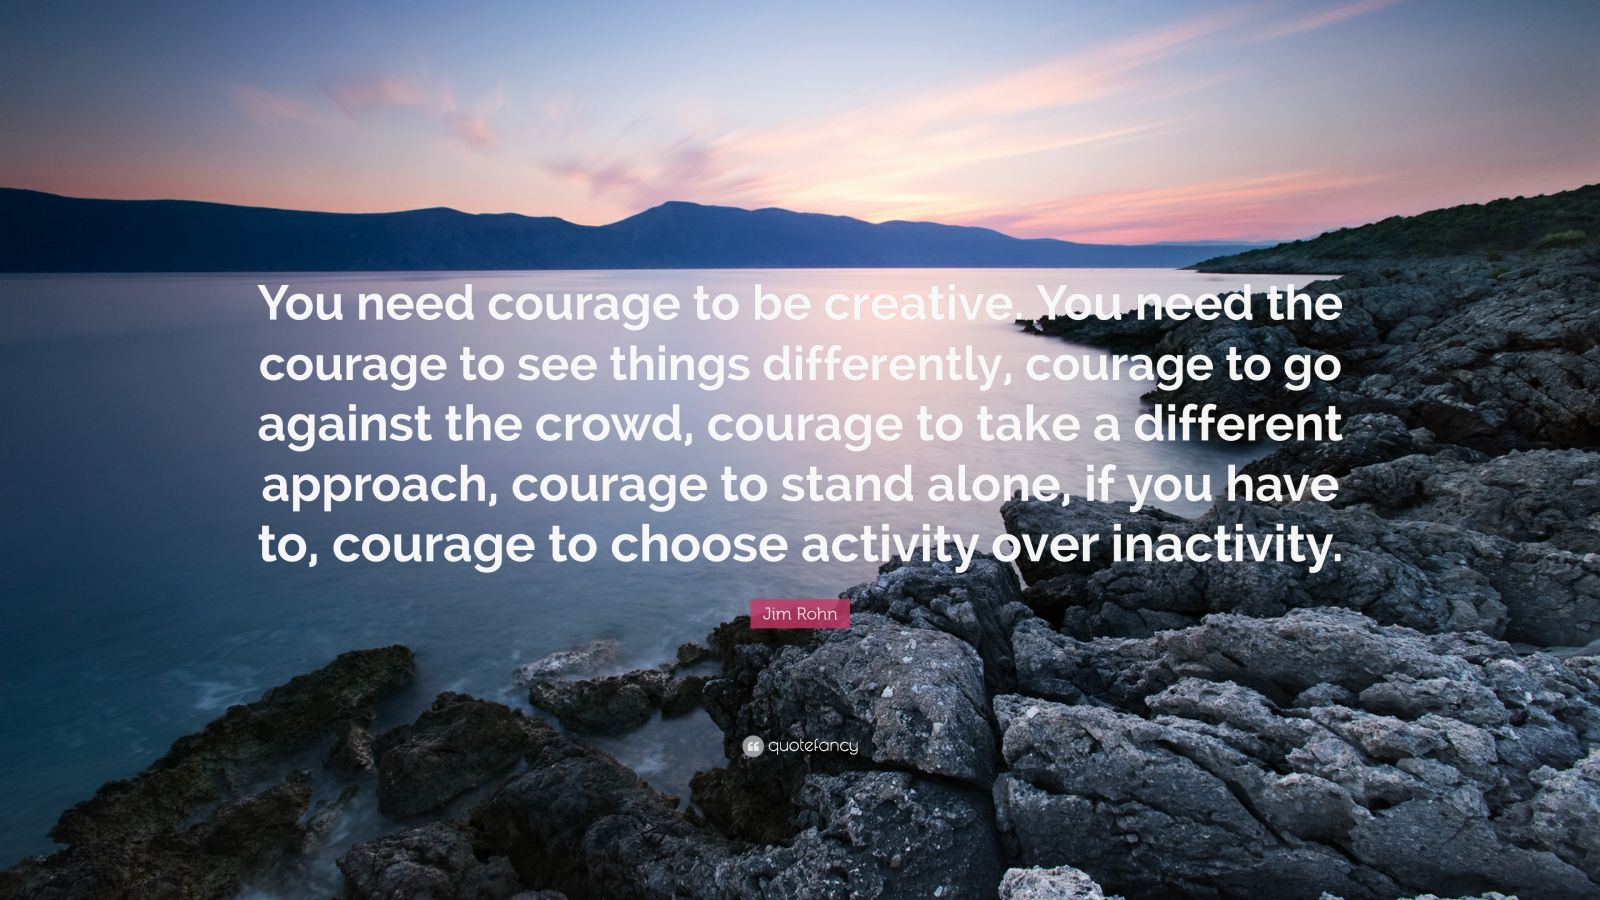 "Jim Rohn Quote: ""You need courage to be creative. You need the courage to see things differently, courage to go against the crowd, courage to take a different approach, courage to stand alone, if you have to, courage to choose activity over inactivity."""